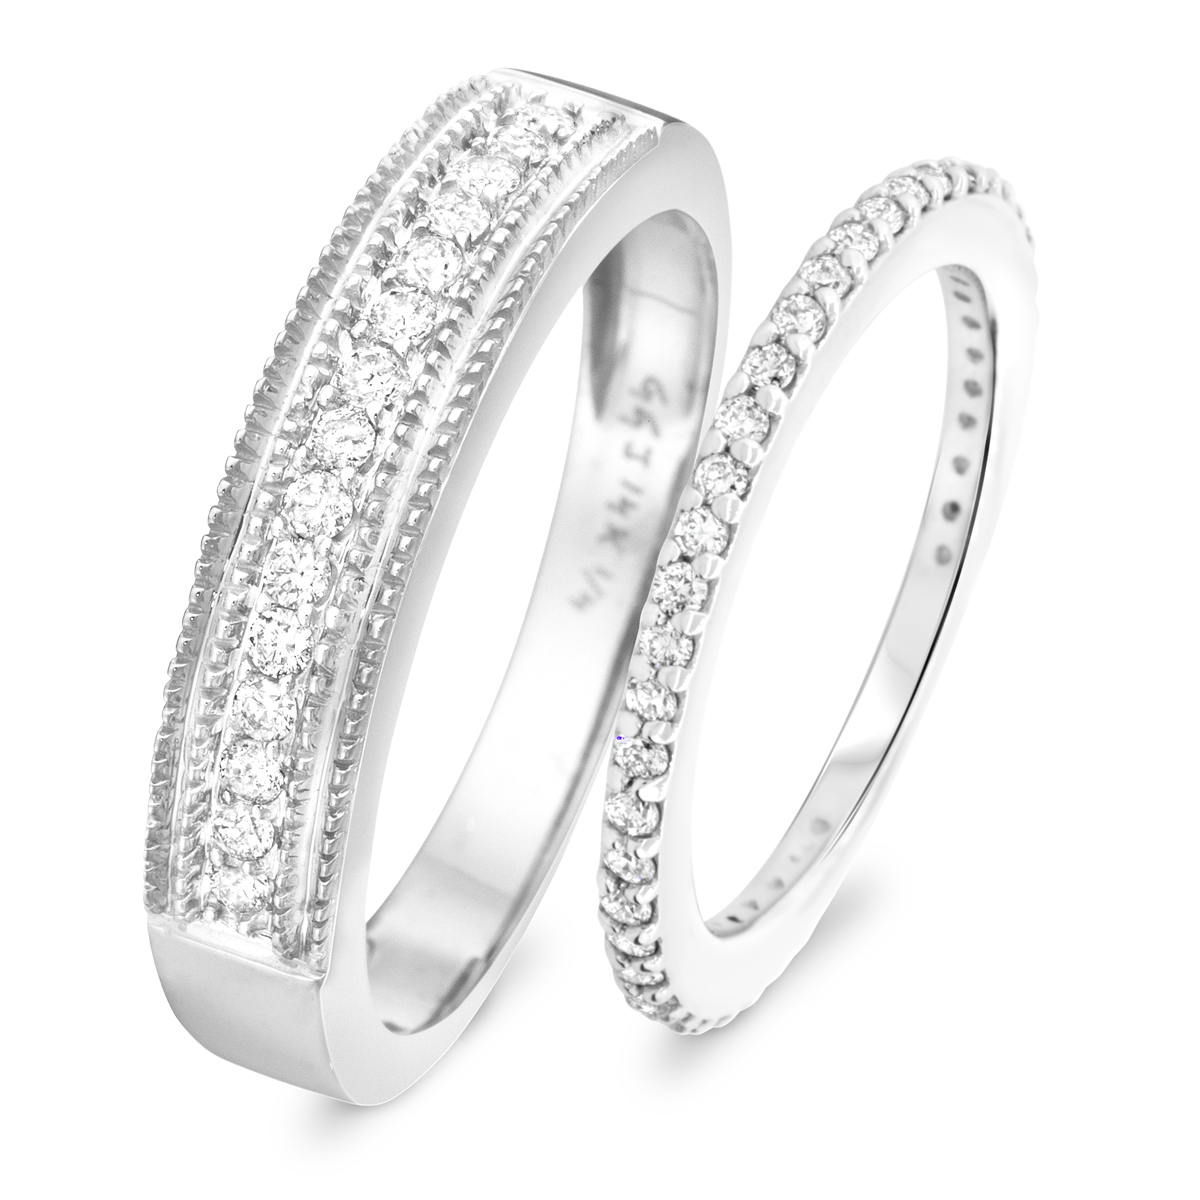 2/3 Carat T.W. Round Cut Diamond His and Hers Wedding Band Set 10K White Gold-